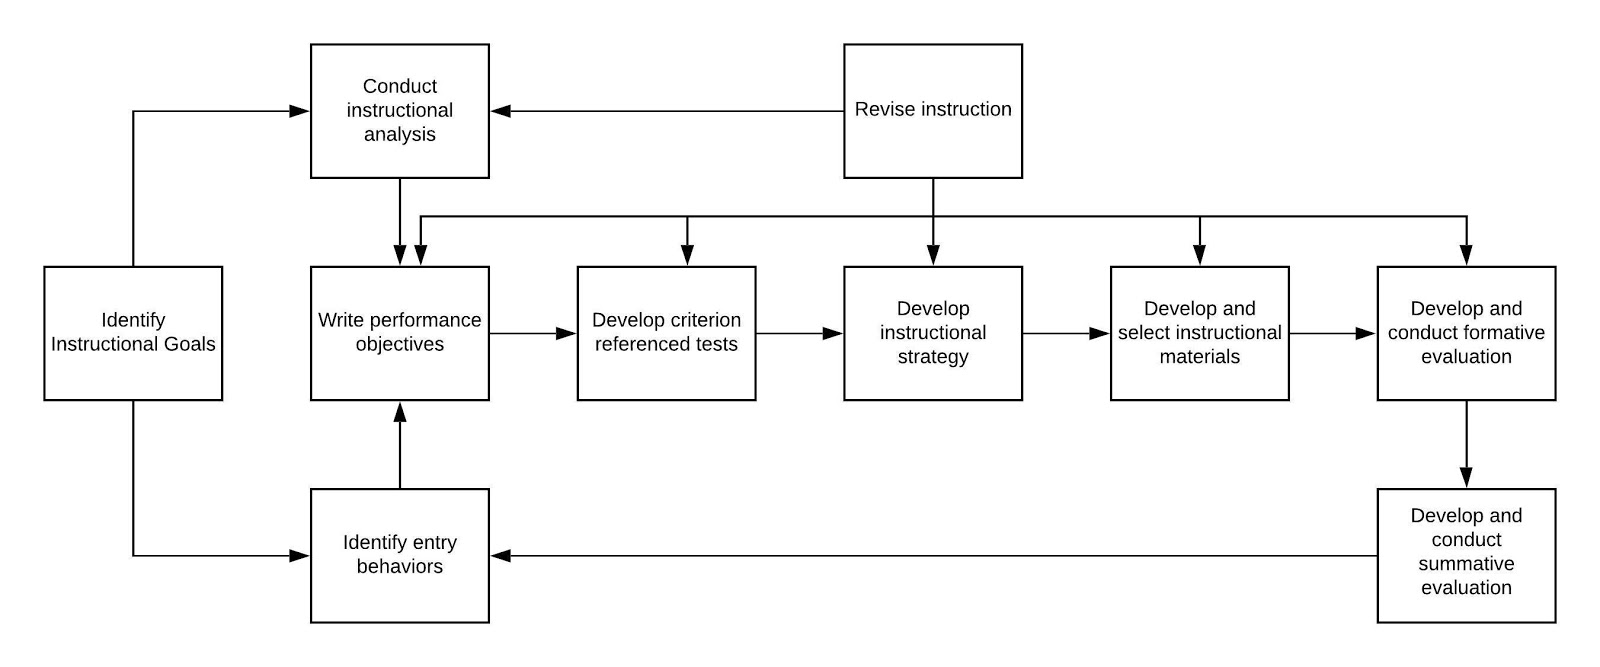 Image of the Dick and Cary model for systematic ID processes.